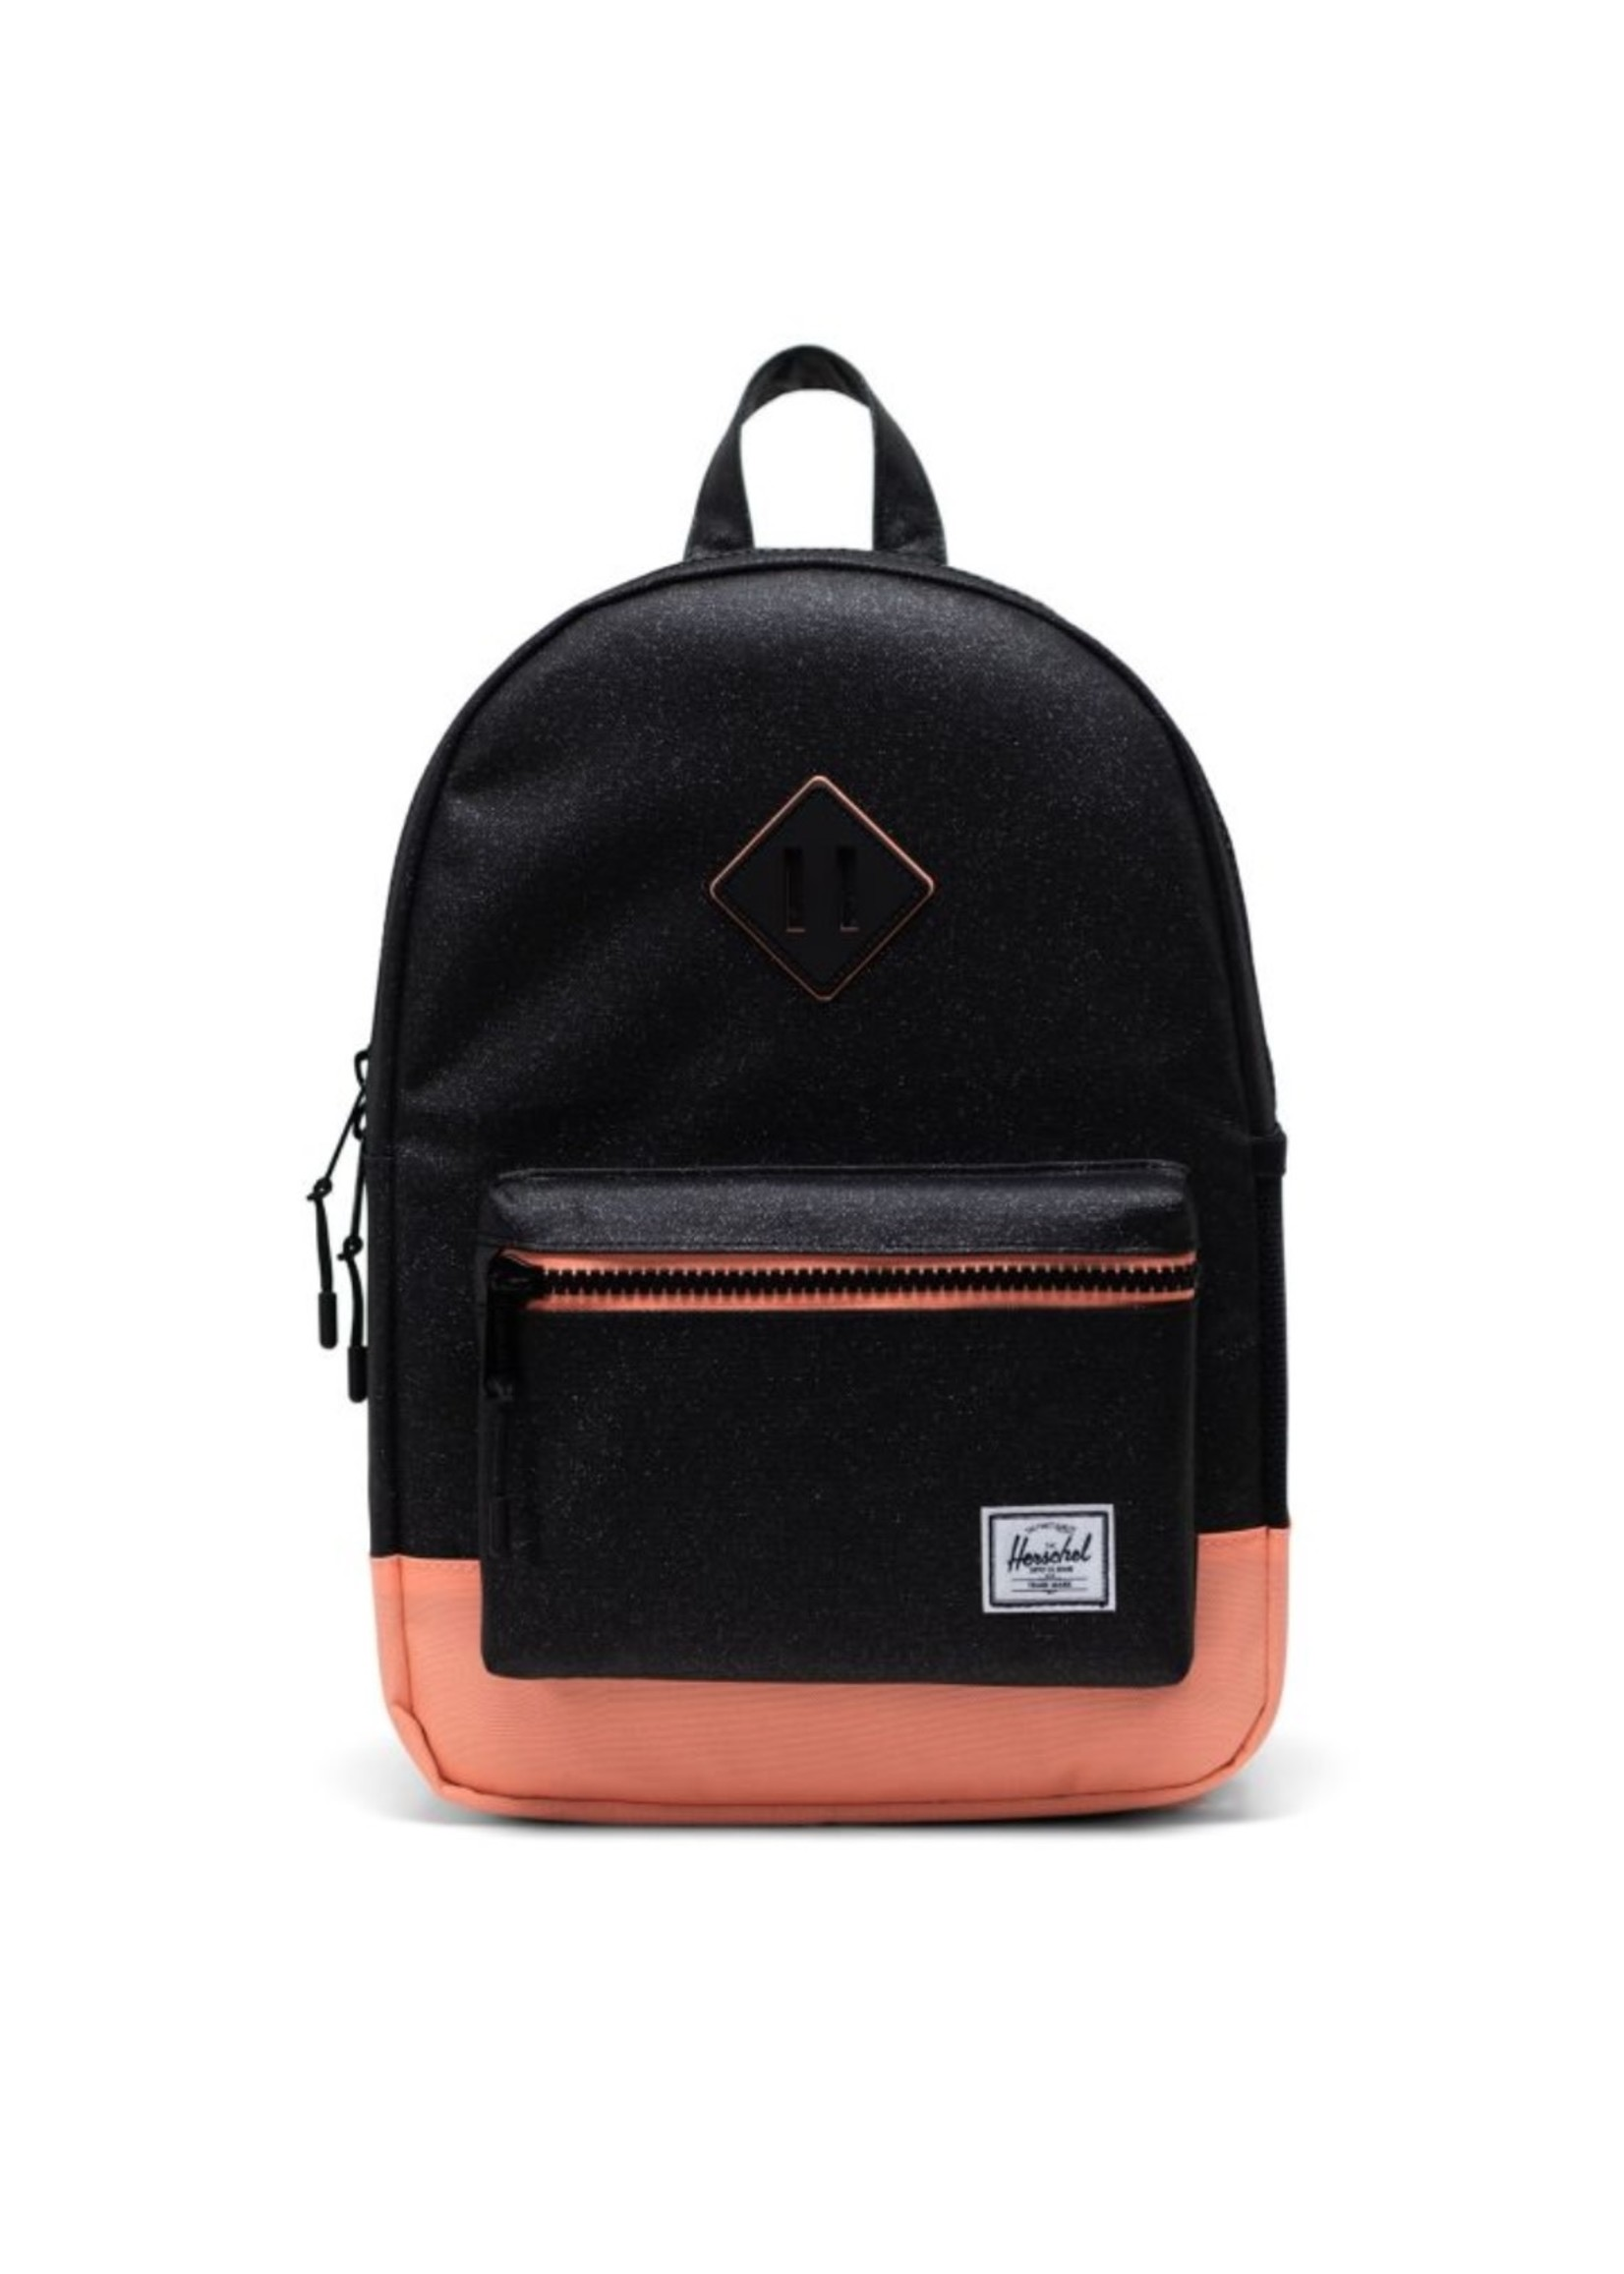 Herschel Supply Co. Heritage Backpack   Youth, Black Sparkle/Neon Peach, 16L